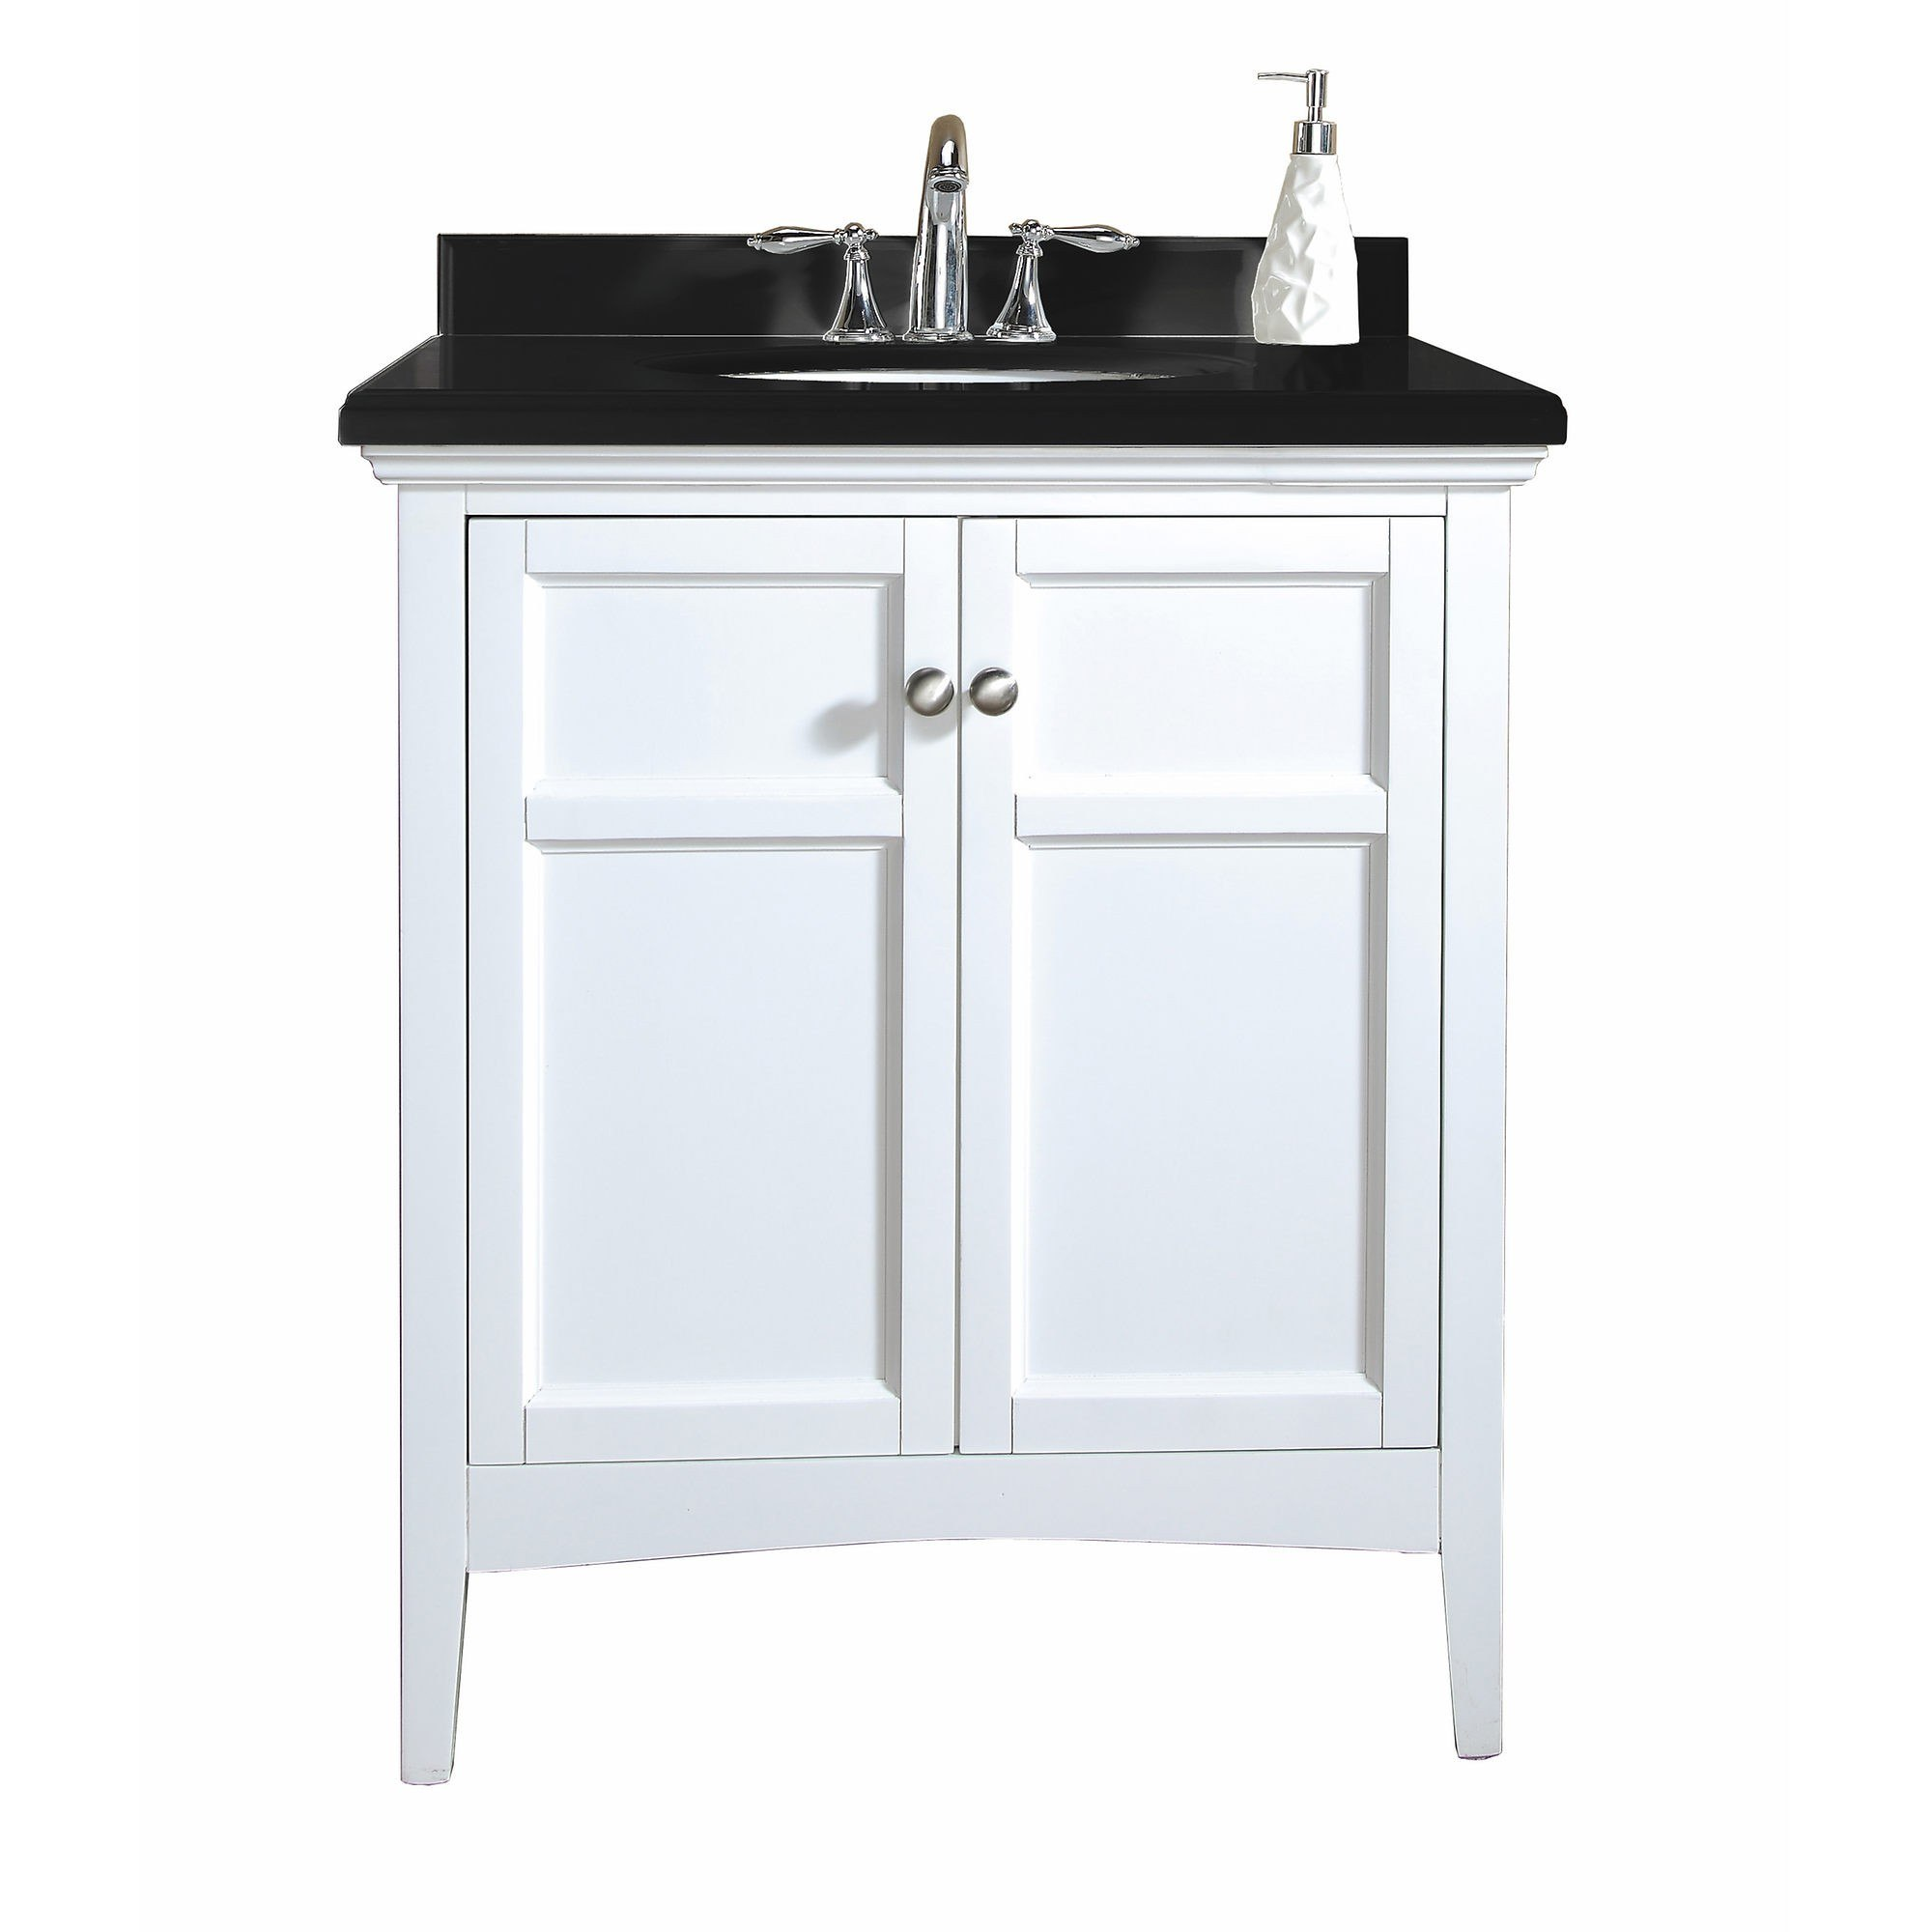 Ove Decor 15VVA-CAMP30-000AF Campo 30 Inch Vanity in White Finish